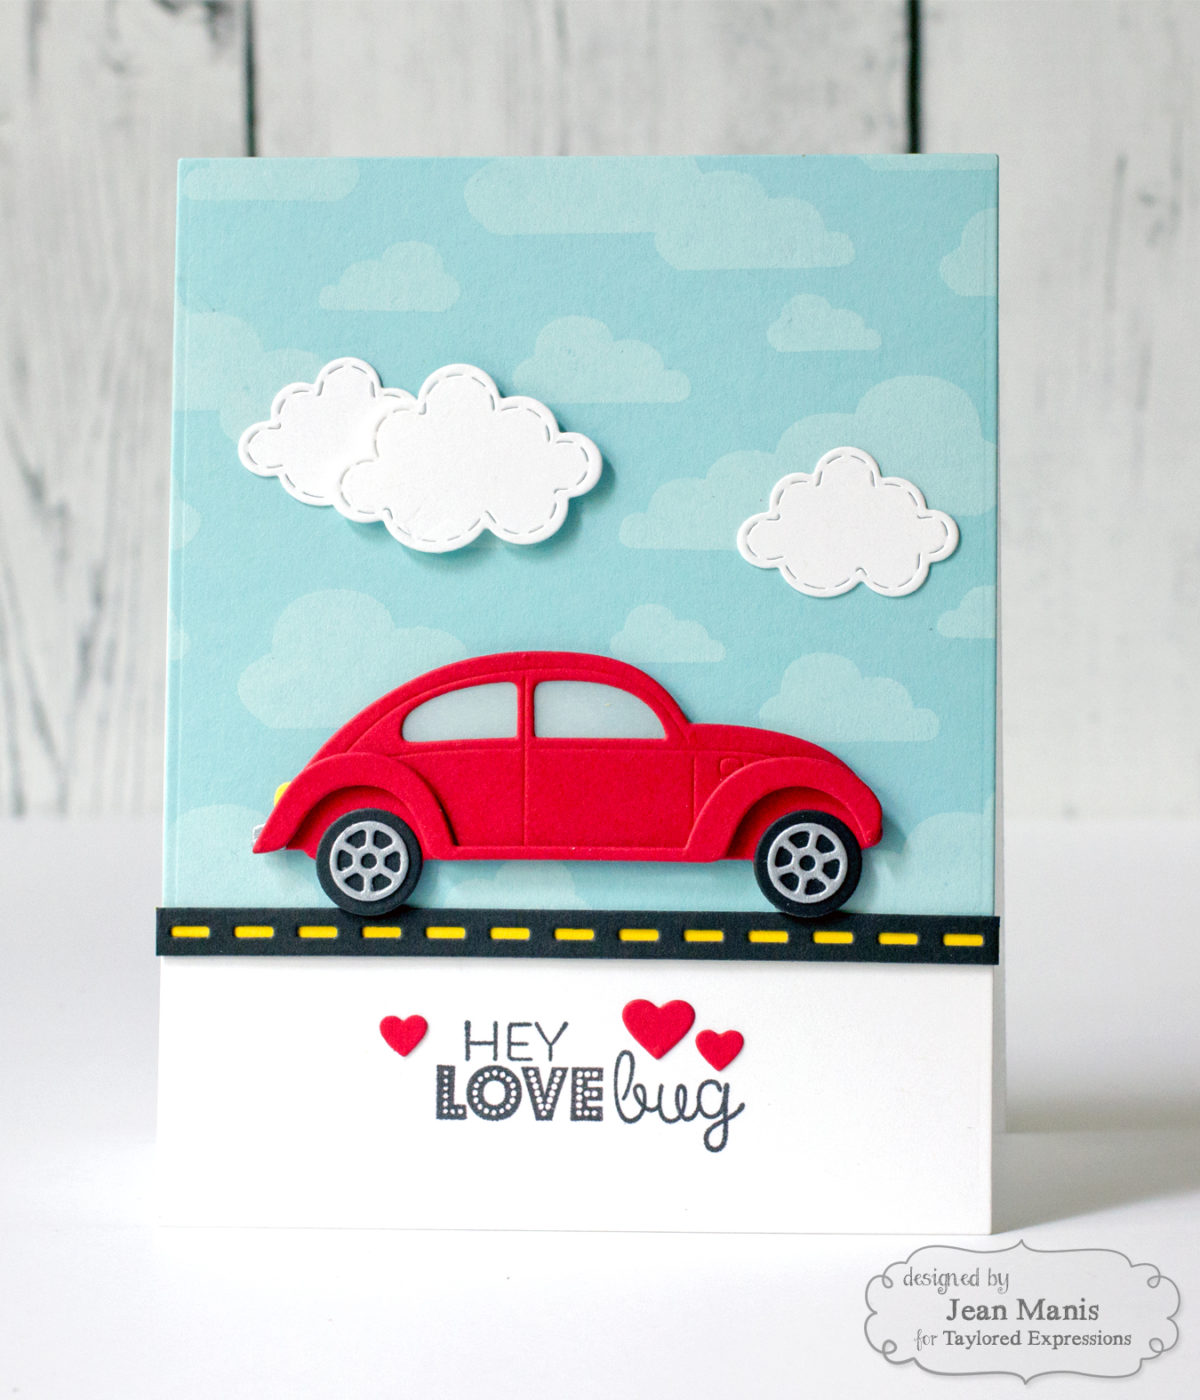 Taylored Expressions – Love Bug